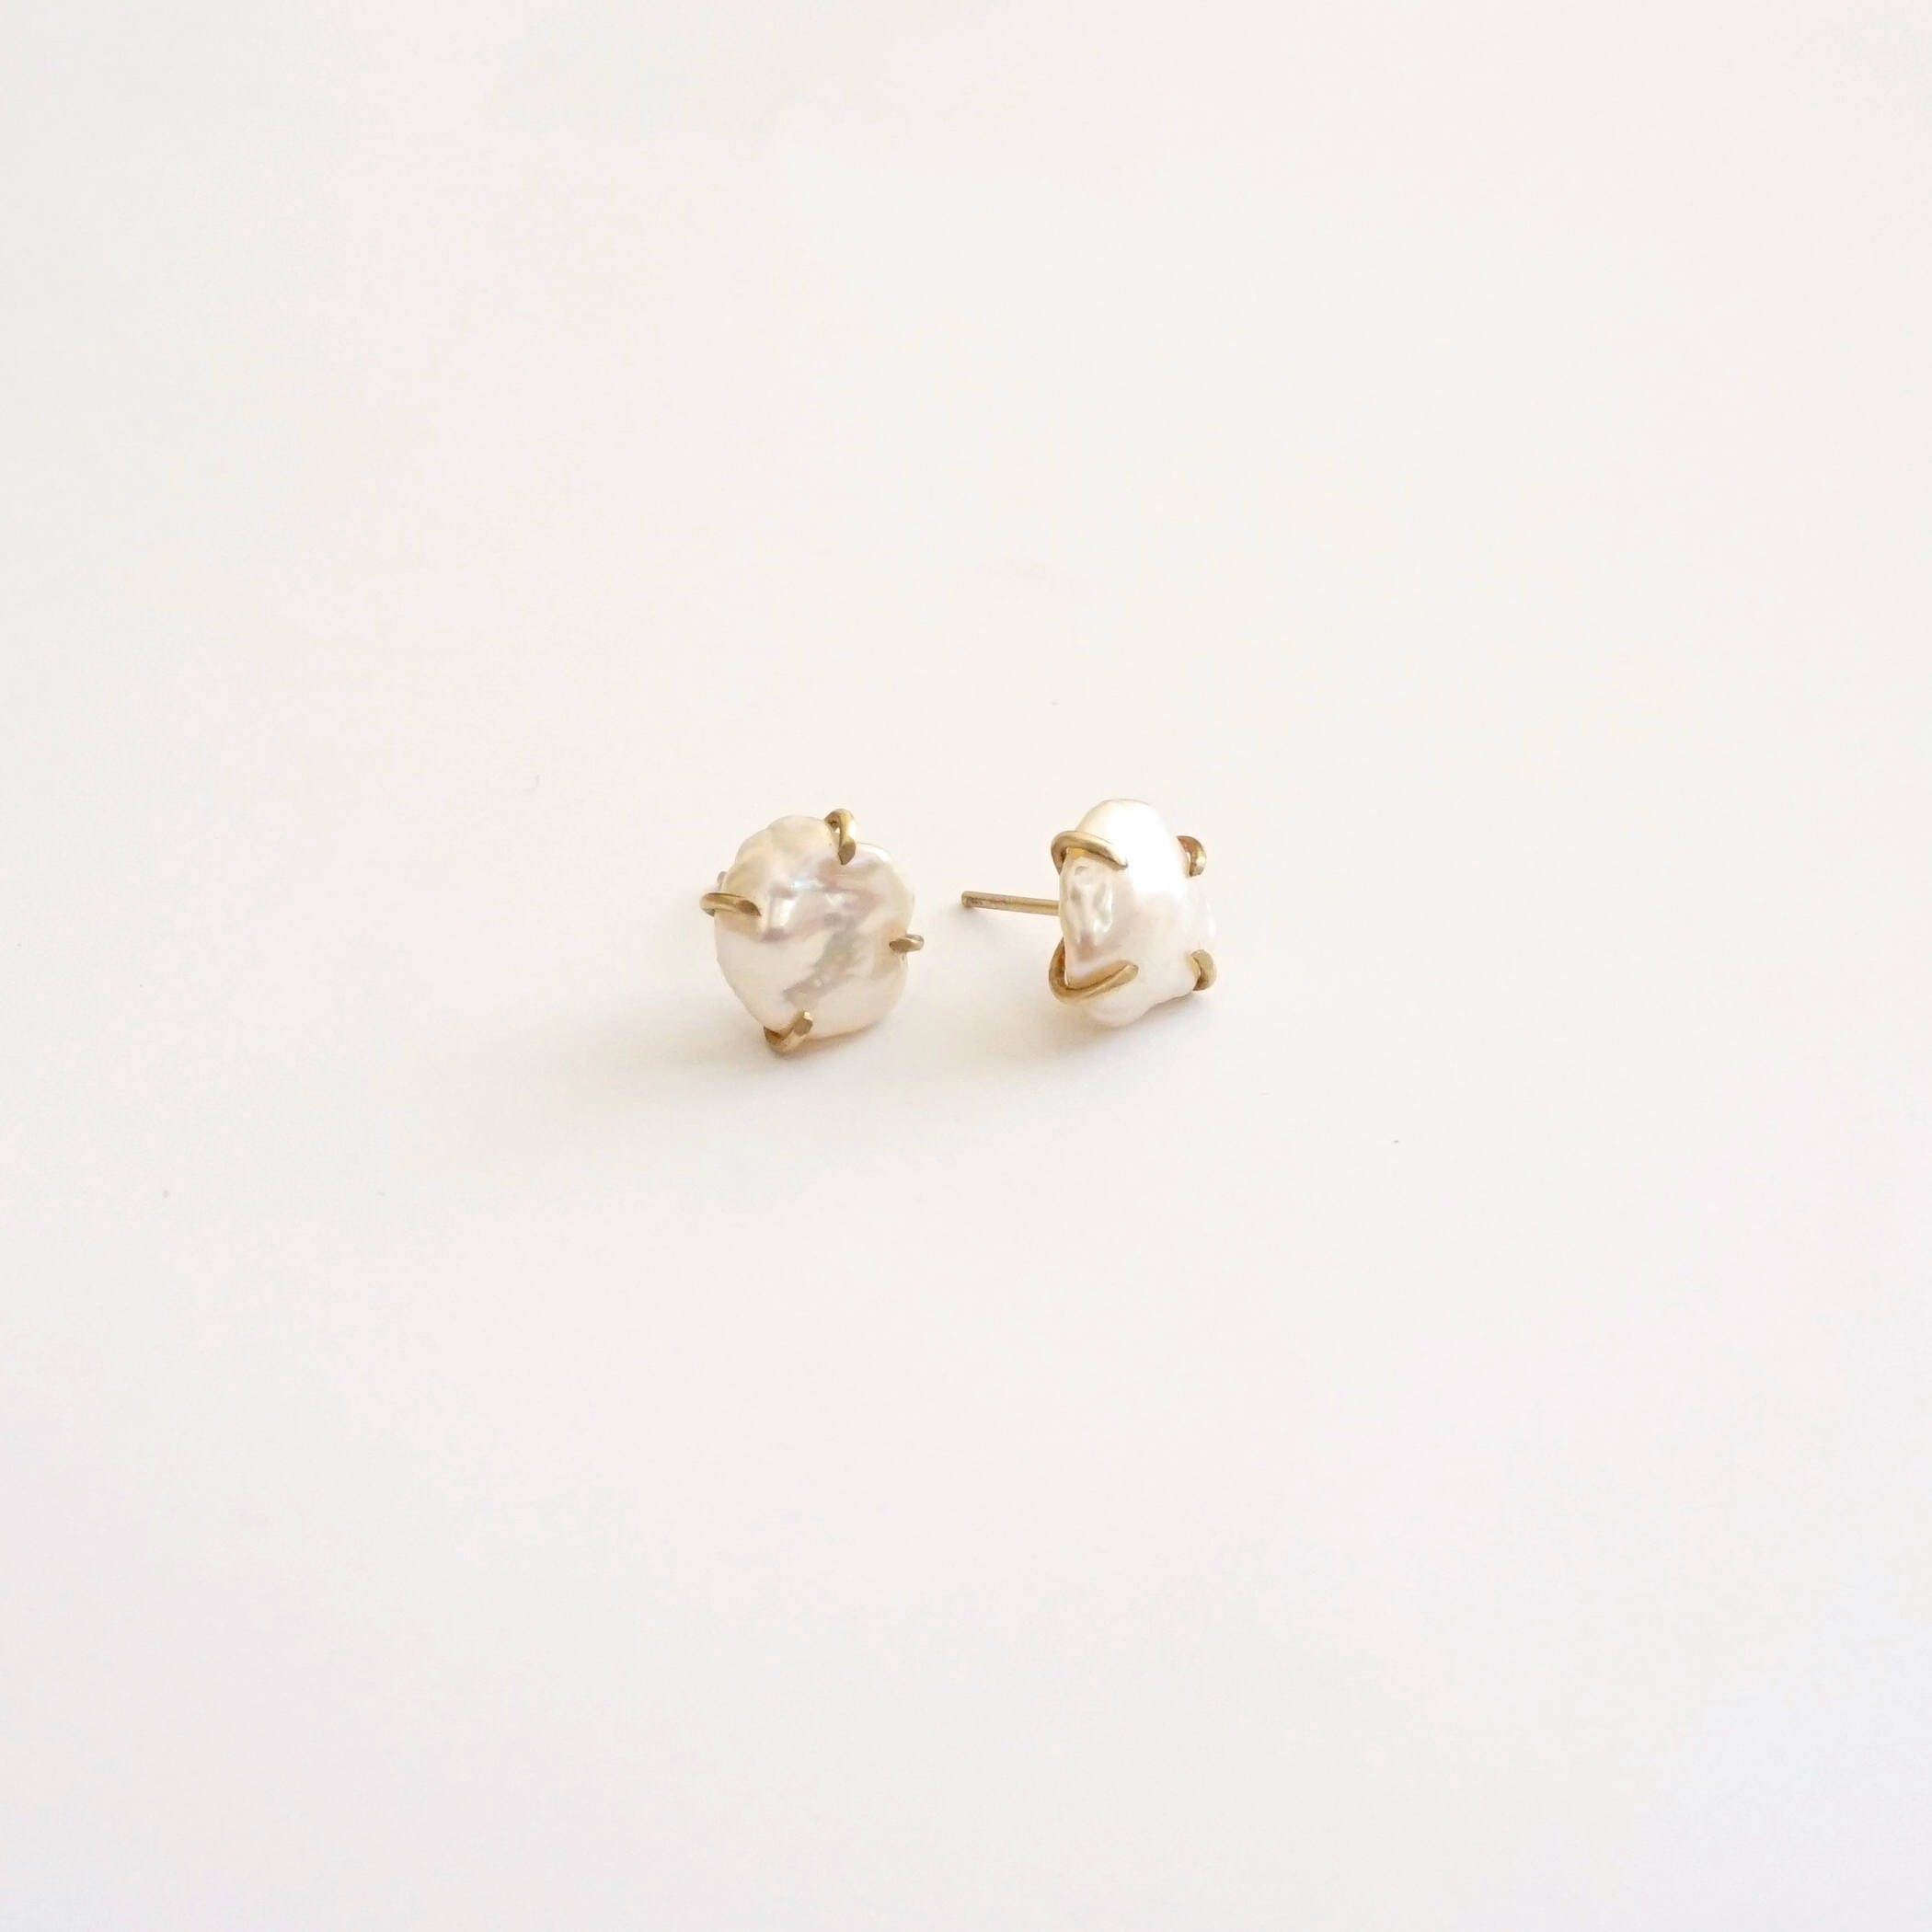 white l earrings stud raya sablan pearl june designs ot daisy silver spear maya